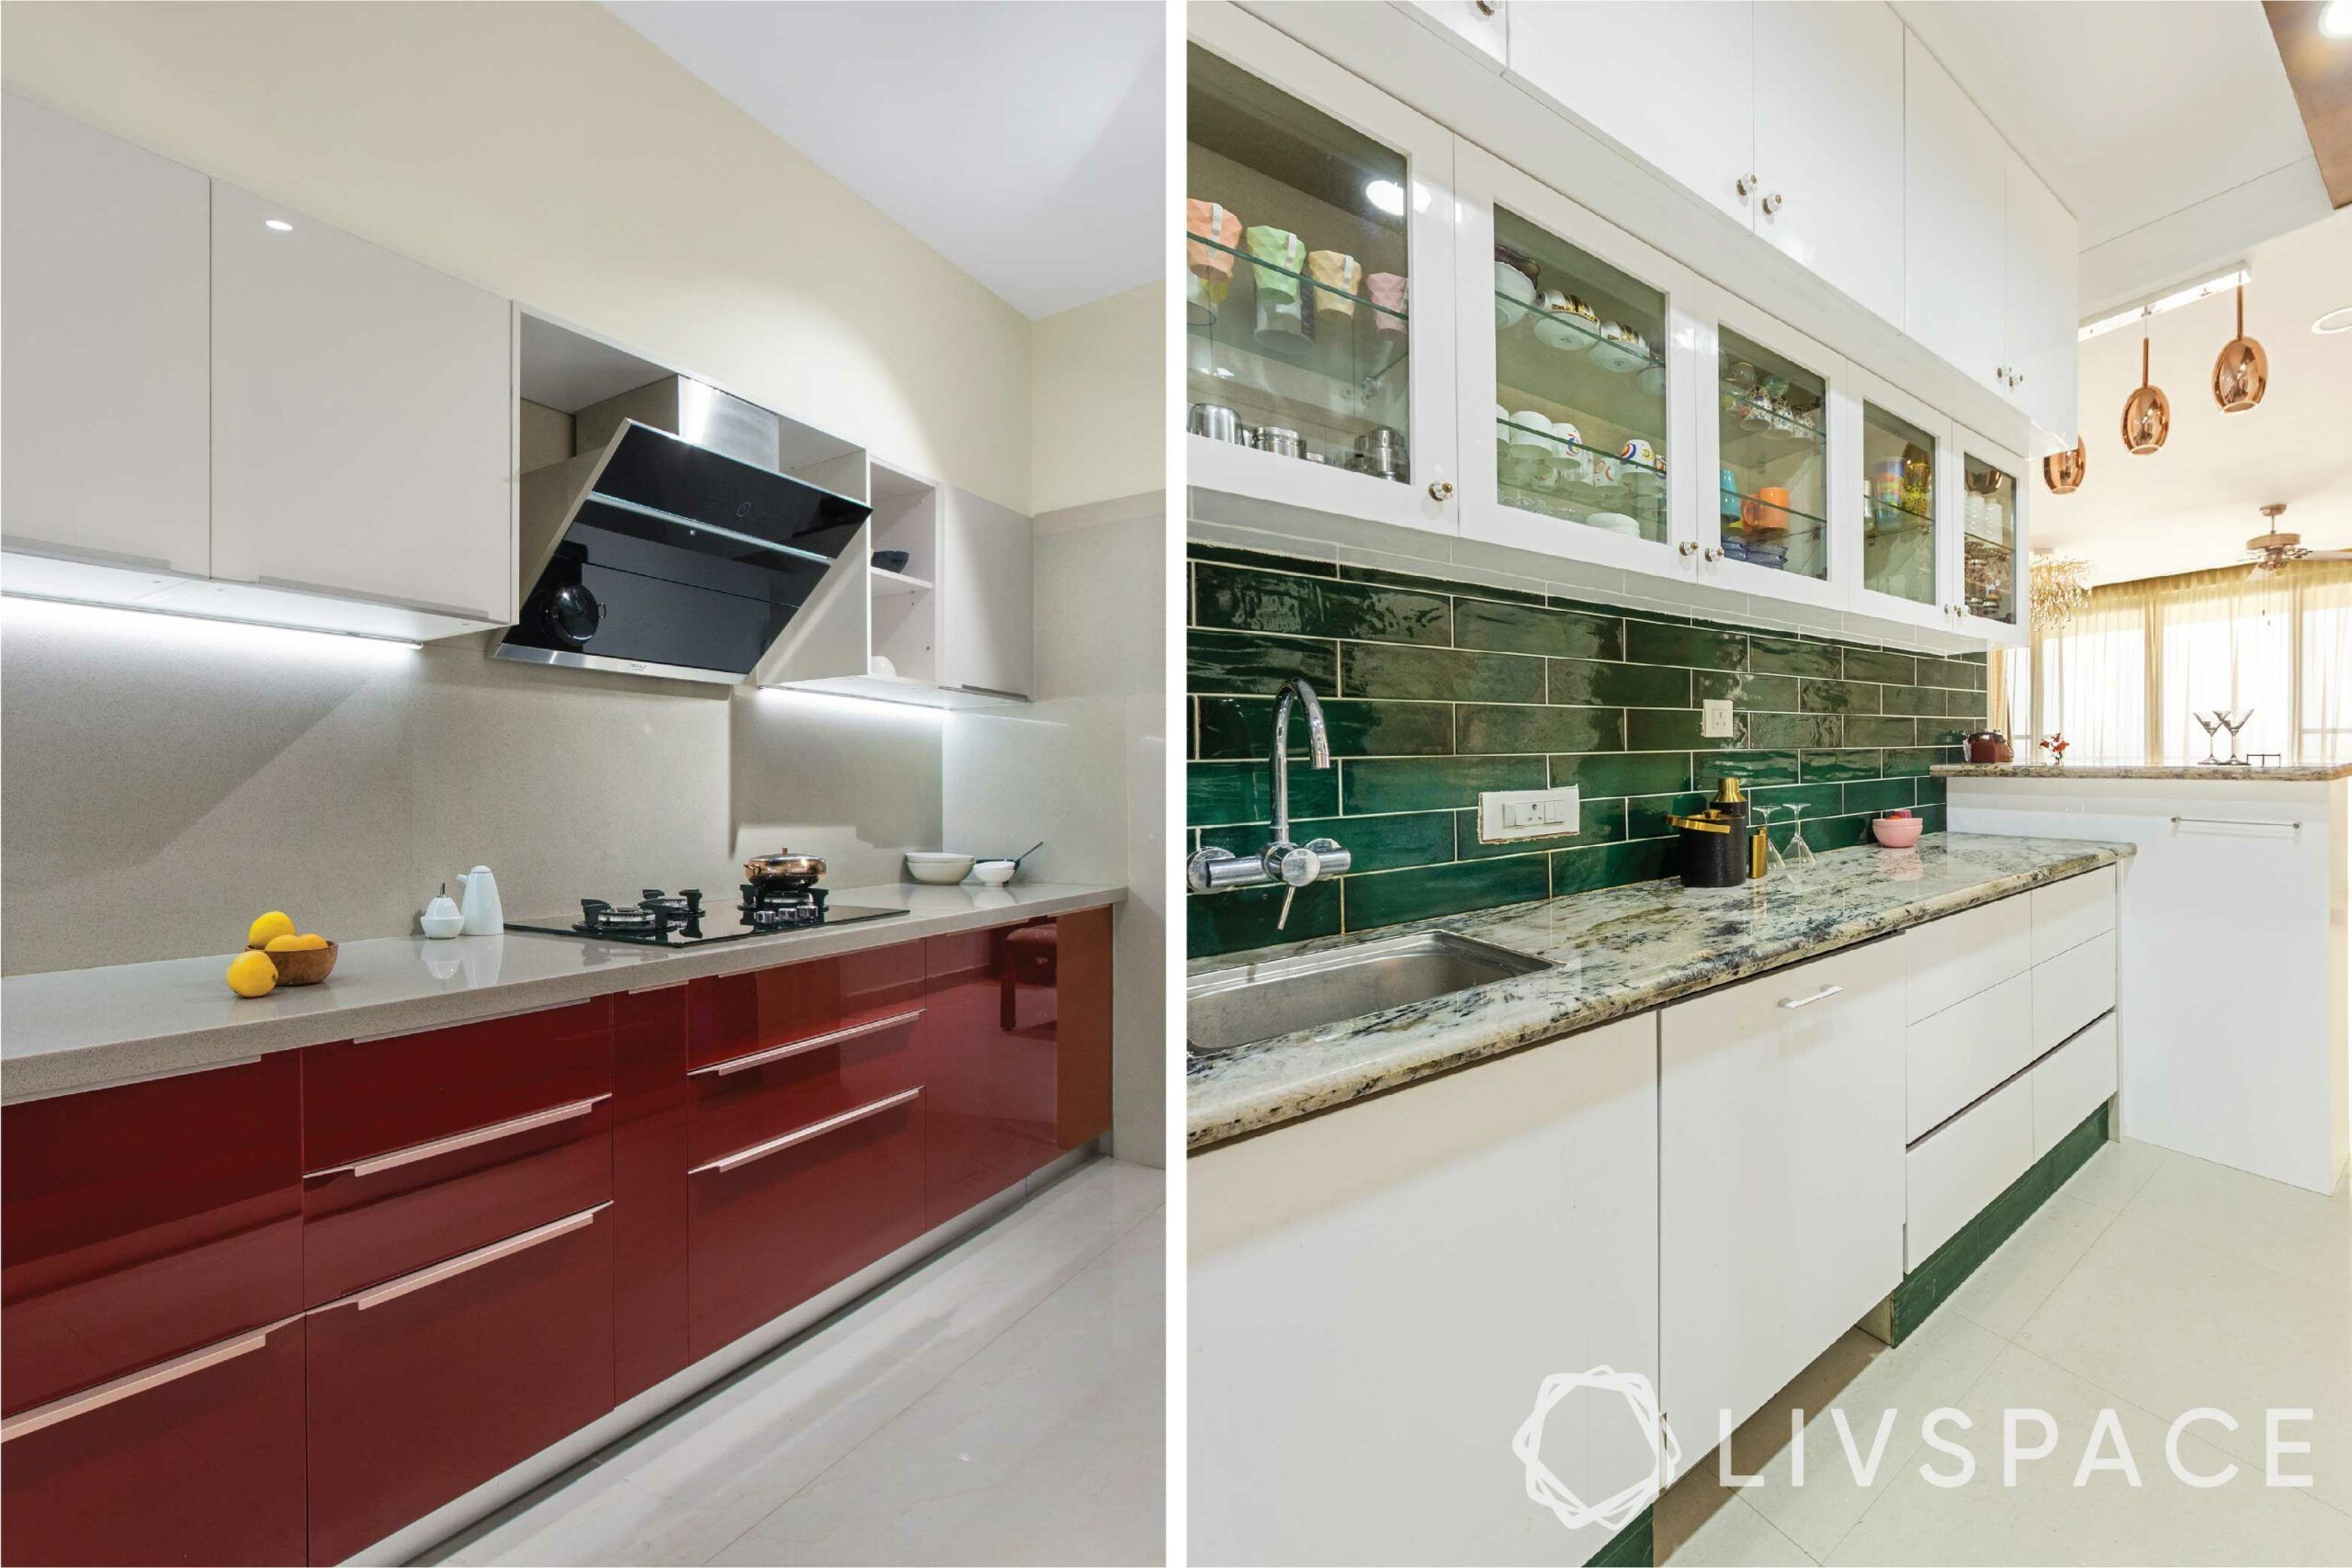 All About Acrylic Kitchen Cabinets In 2020 Glass Kitchen Cabinets Kitchen Cabinets Glass Kitchen Cabinet Doors